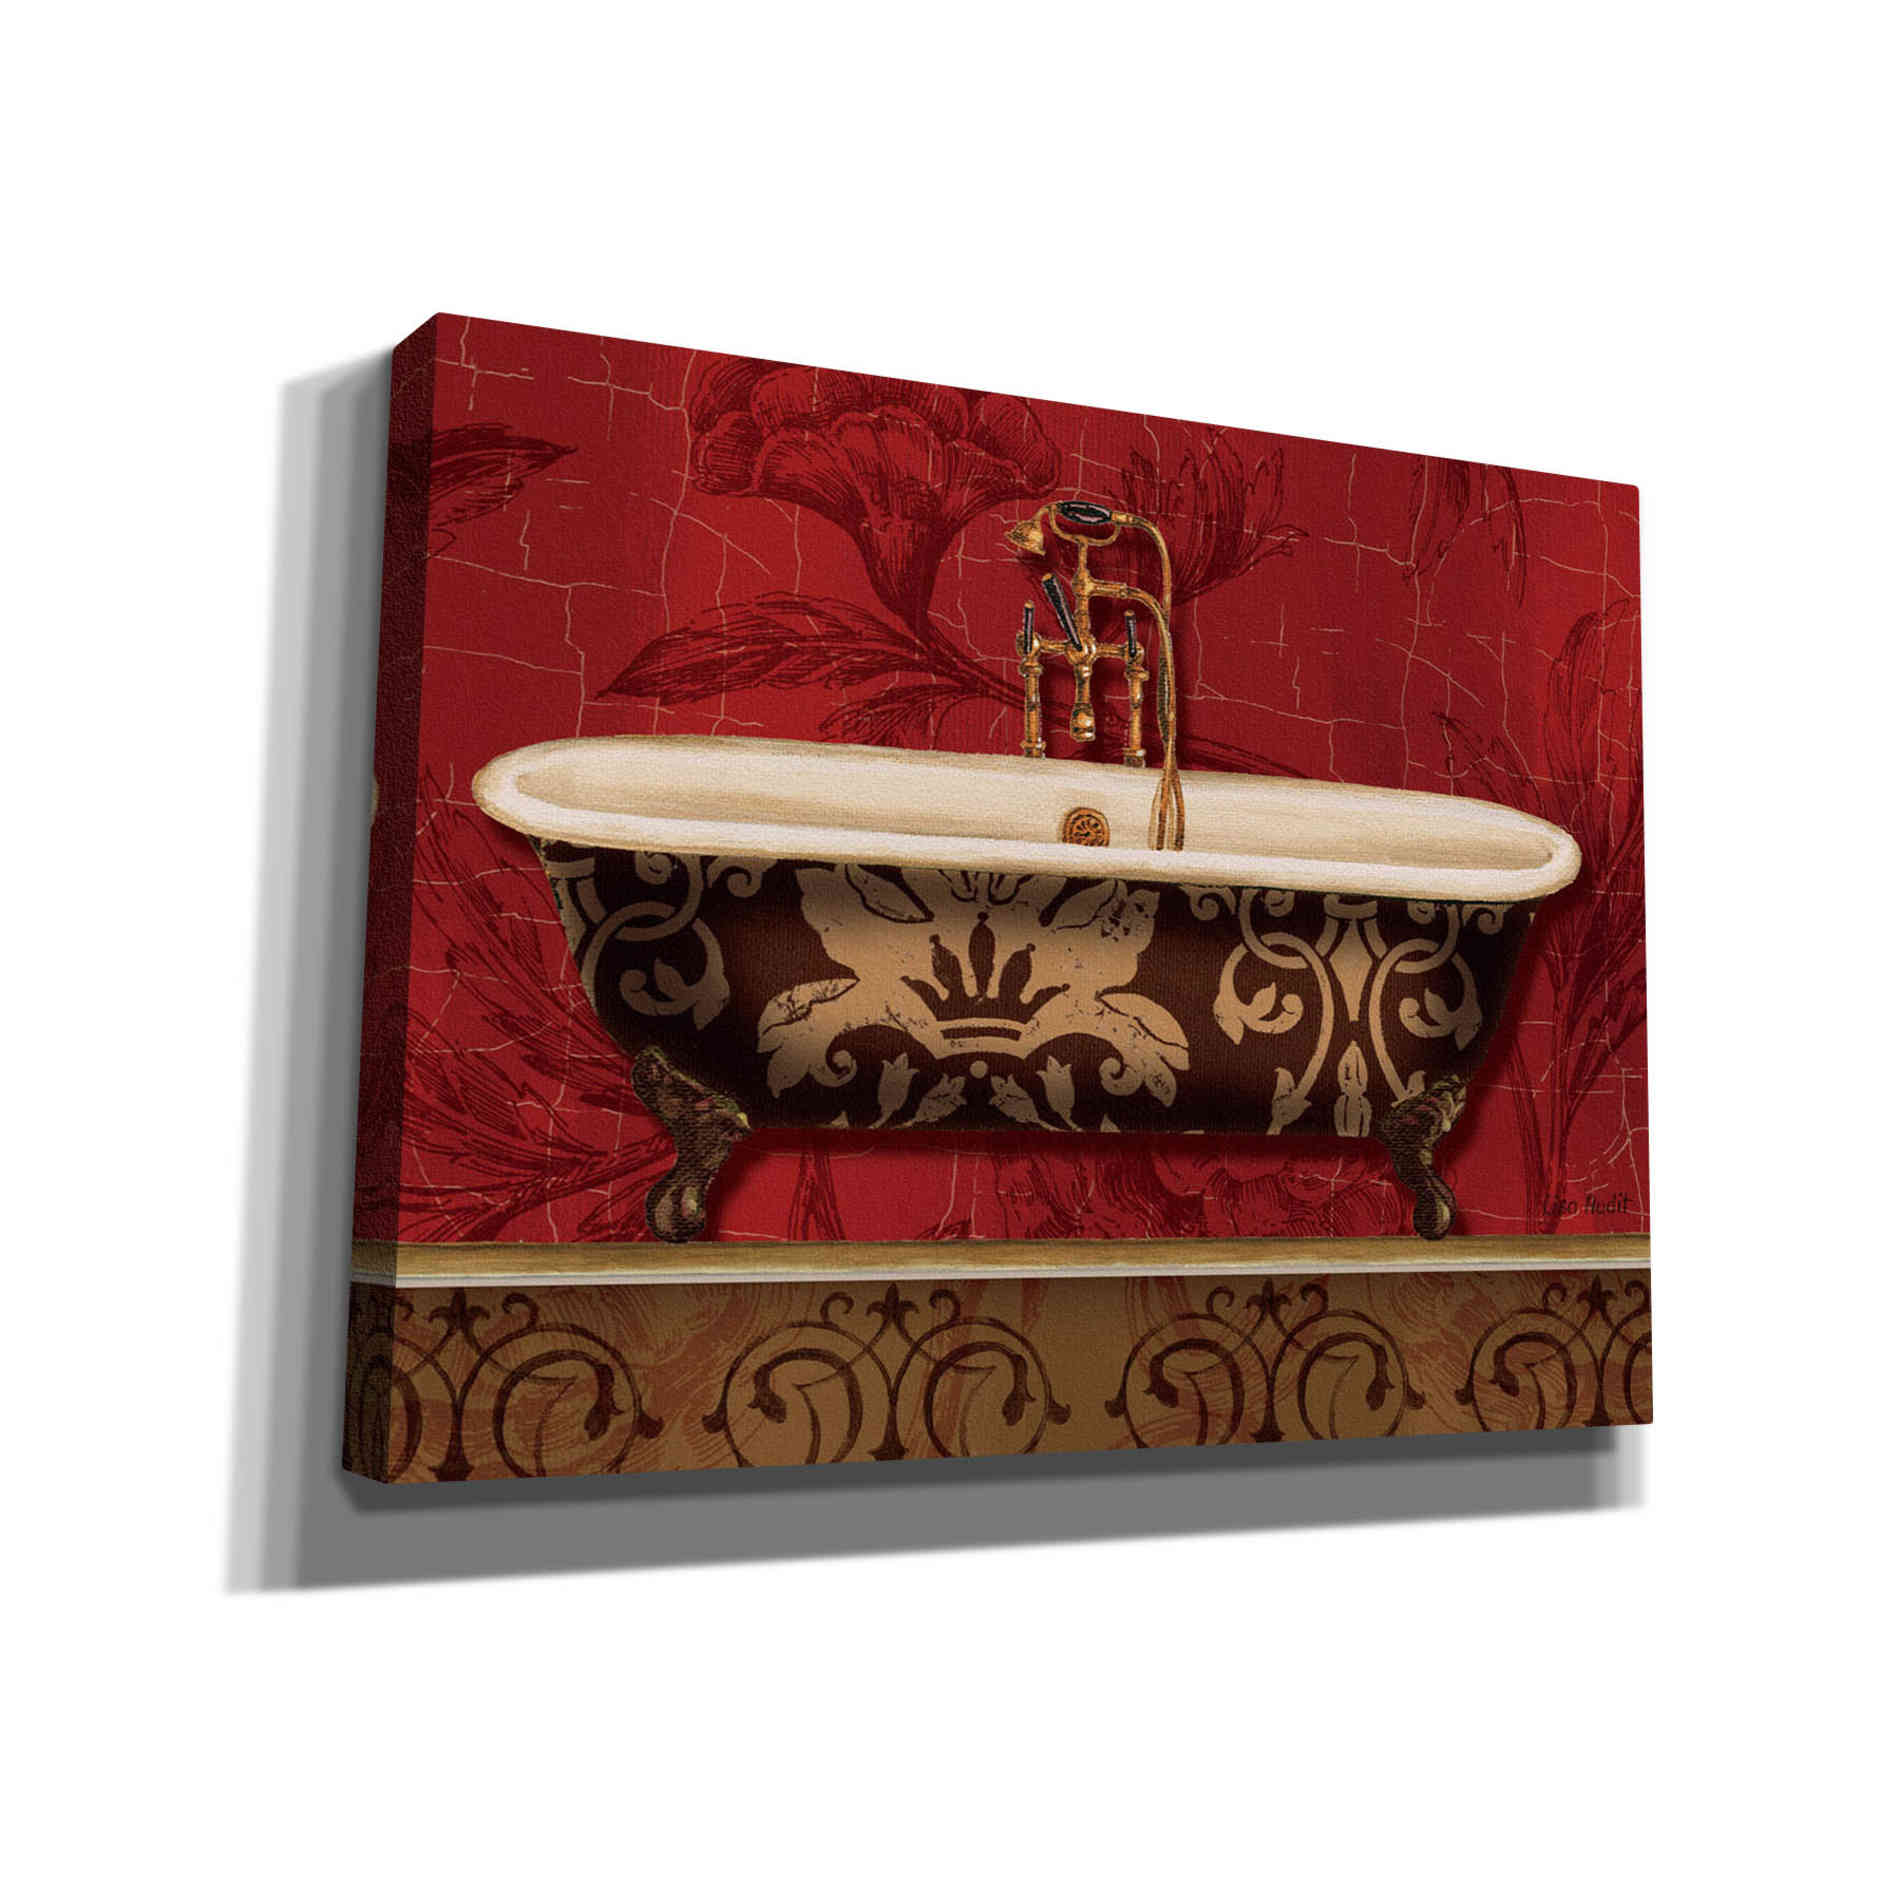 Epic Graffiti 'Royal Red Bath I' by Lisa Audit, Canvas Wall Art